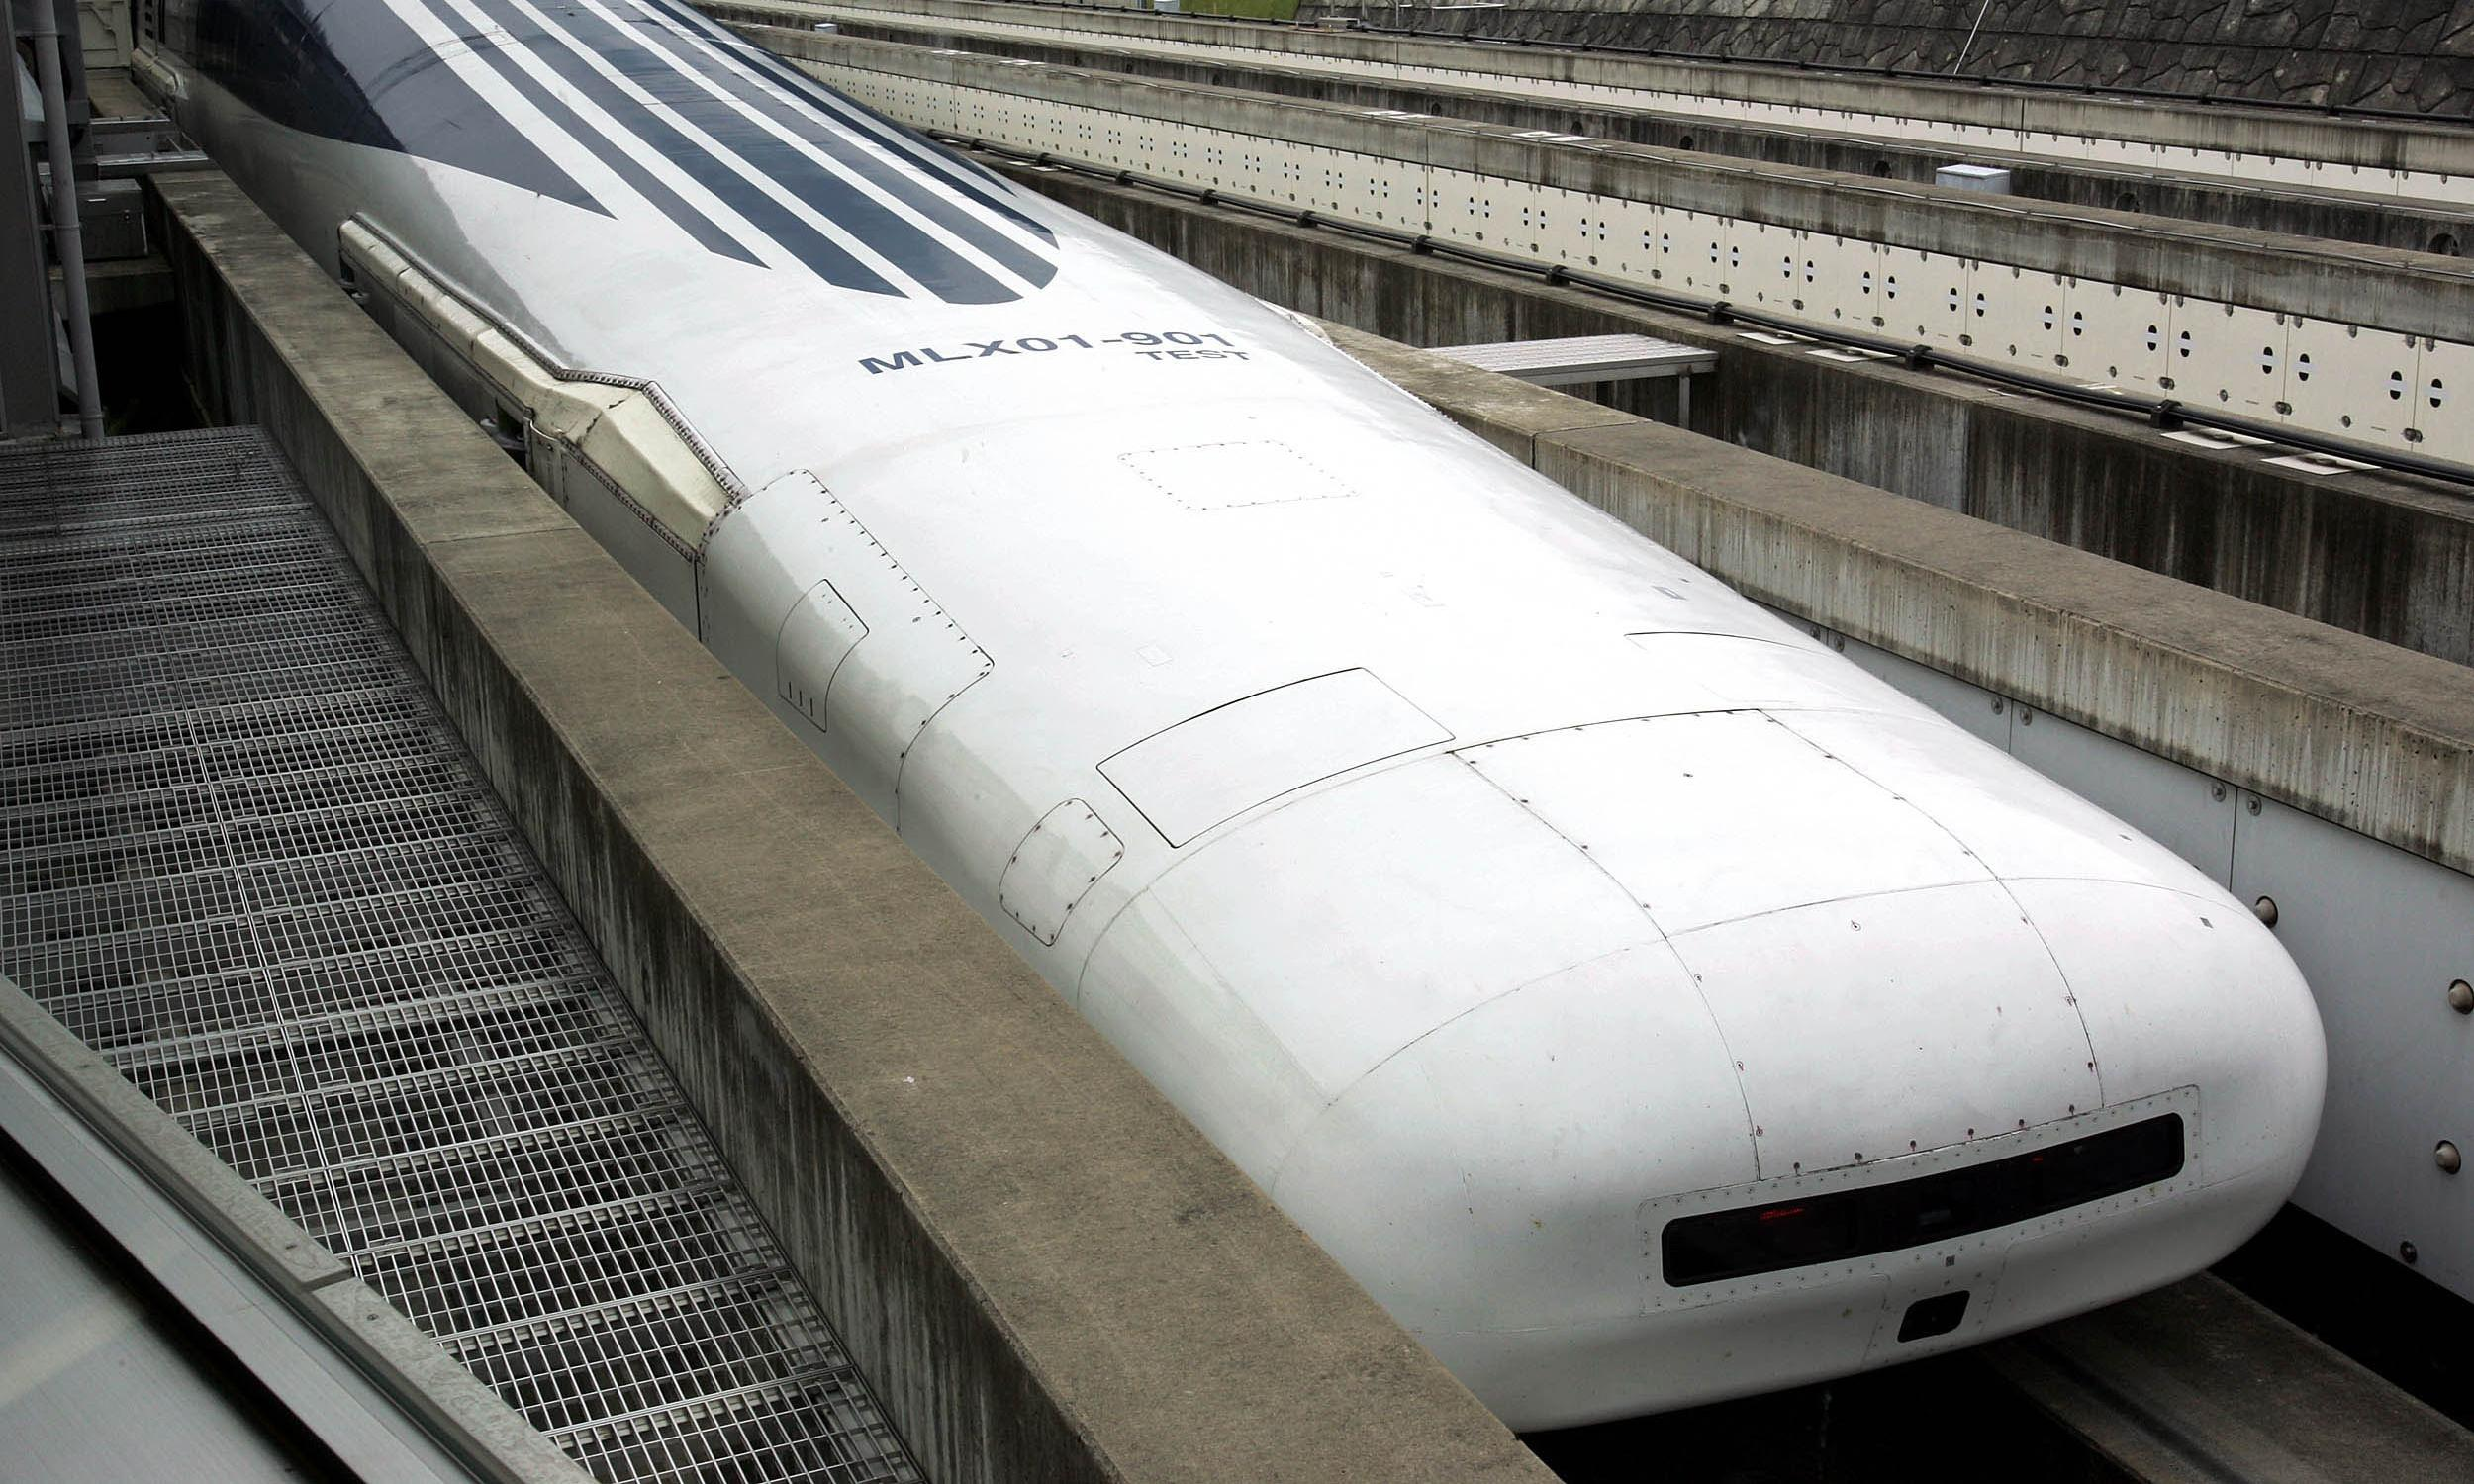 Maglev trains: why aren't we gliding home on hovering carriages?